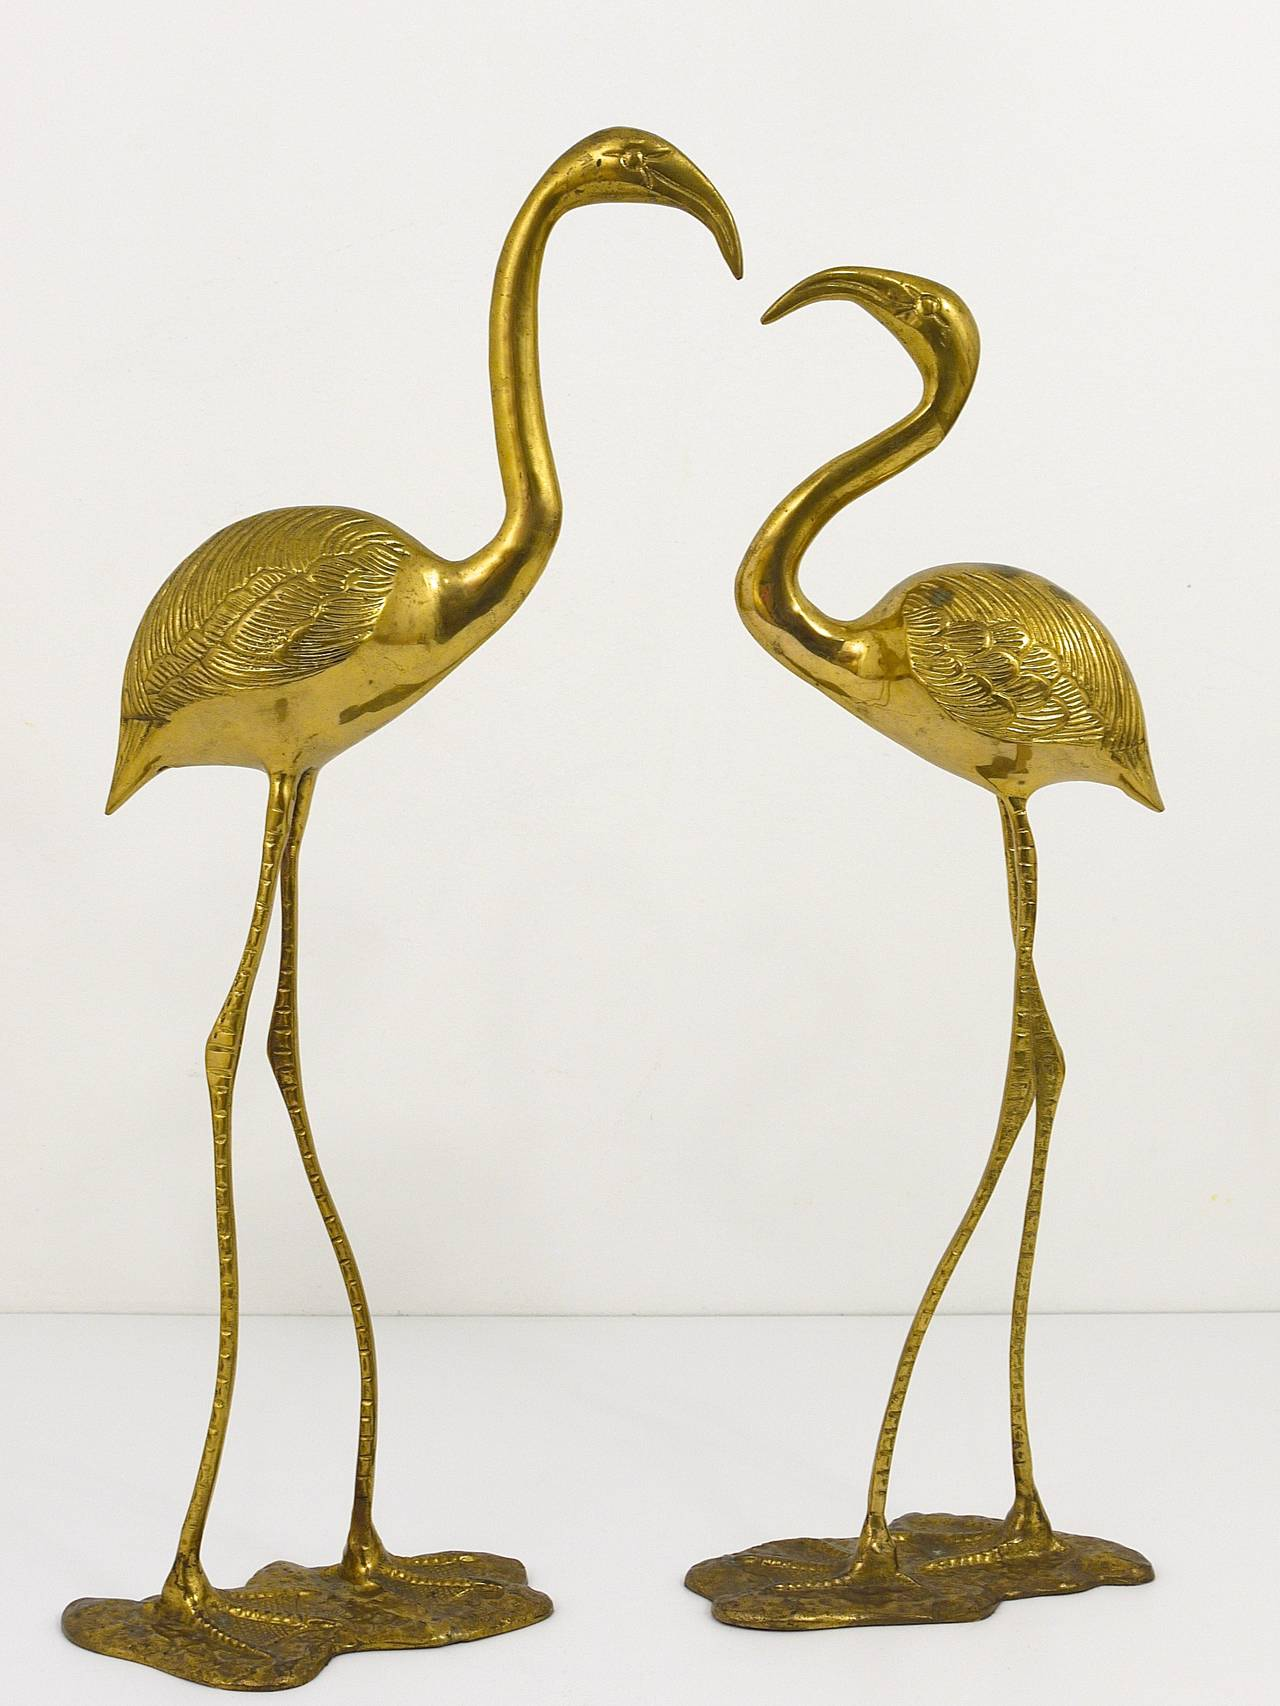 A Beautiful Pair Of French Brass Flamingo Sculptures, 1970s, France 4